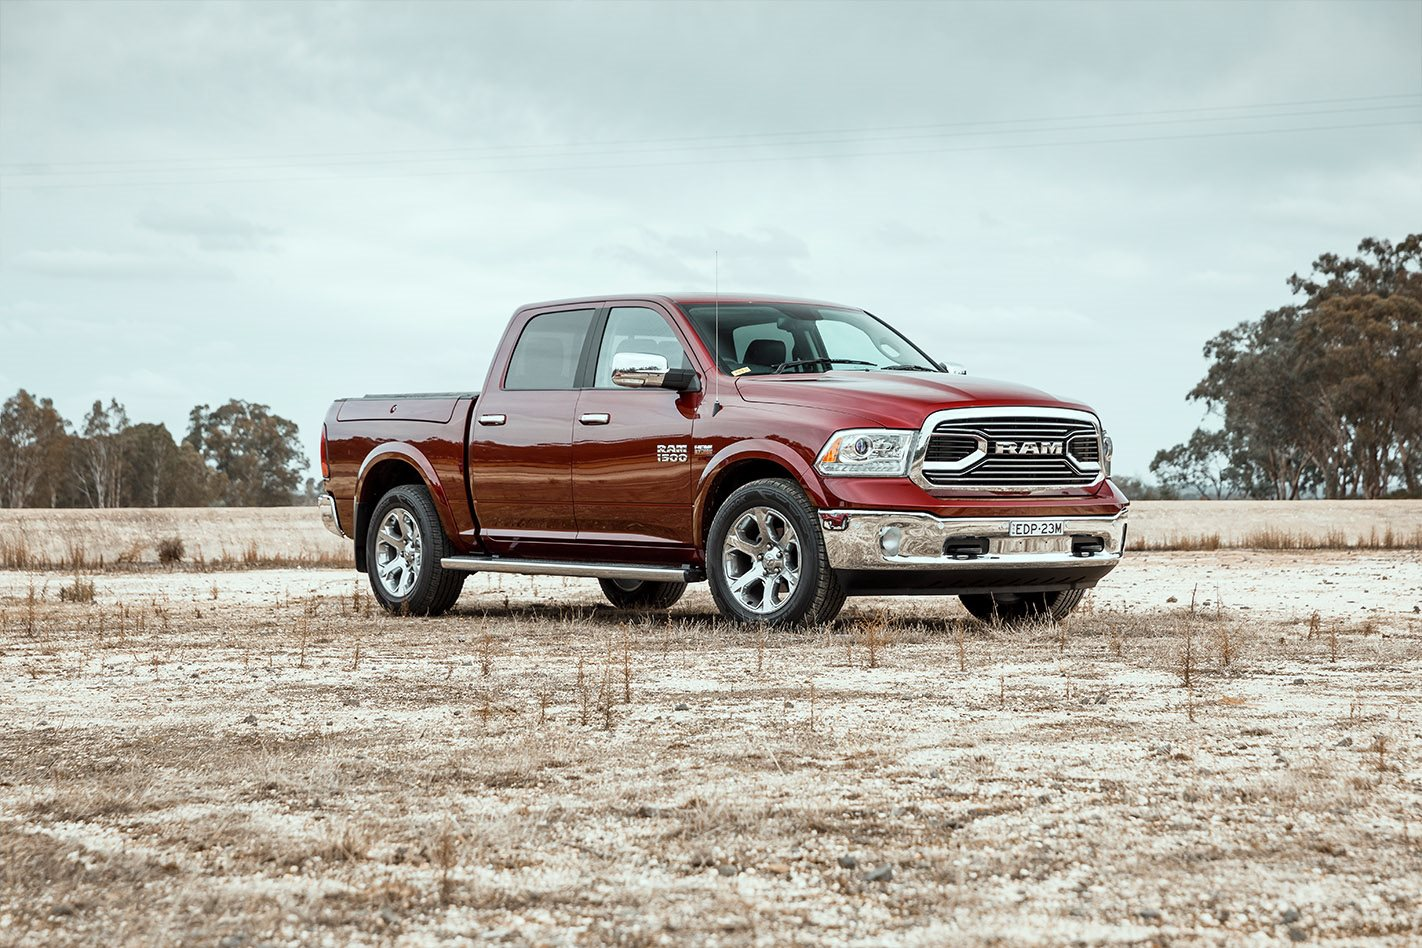 2020 Ram 1500 Laramie – is it right for you?